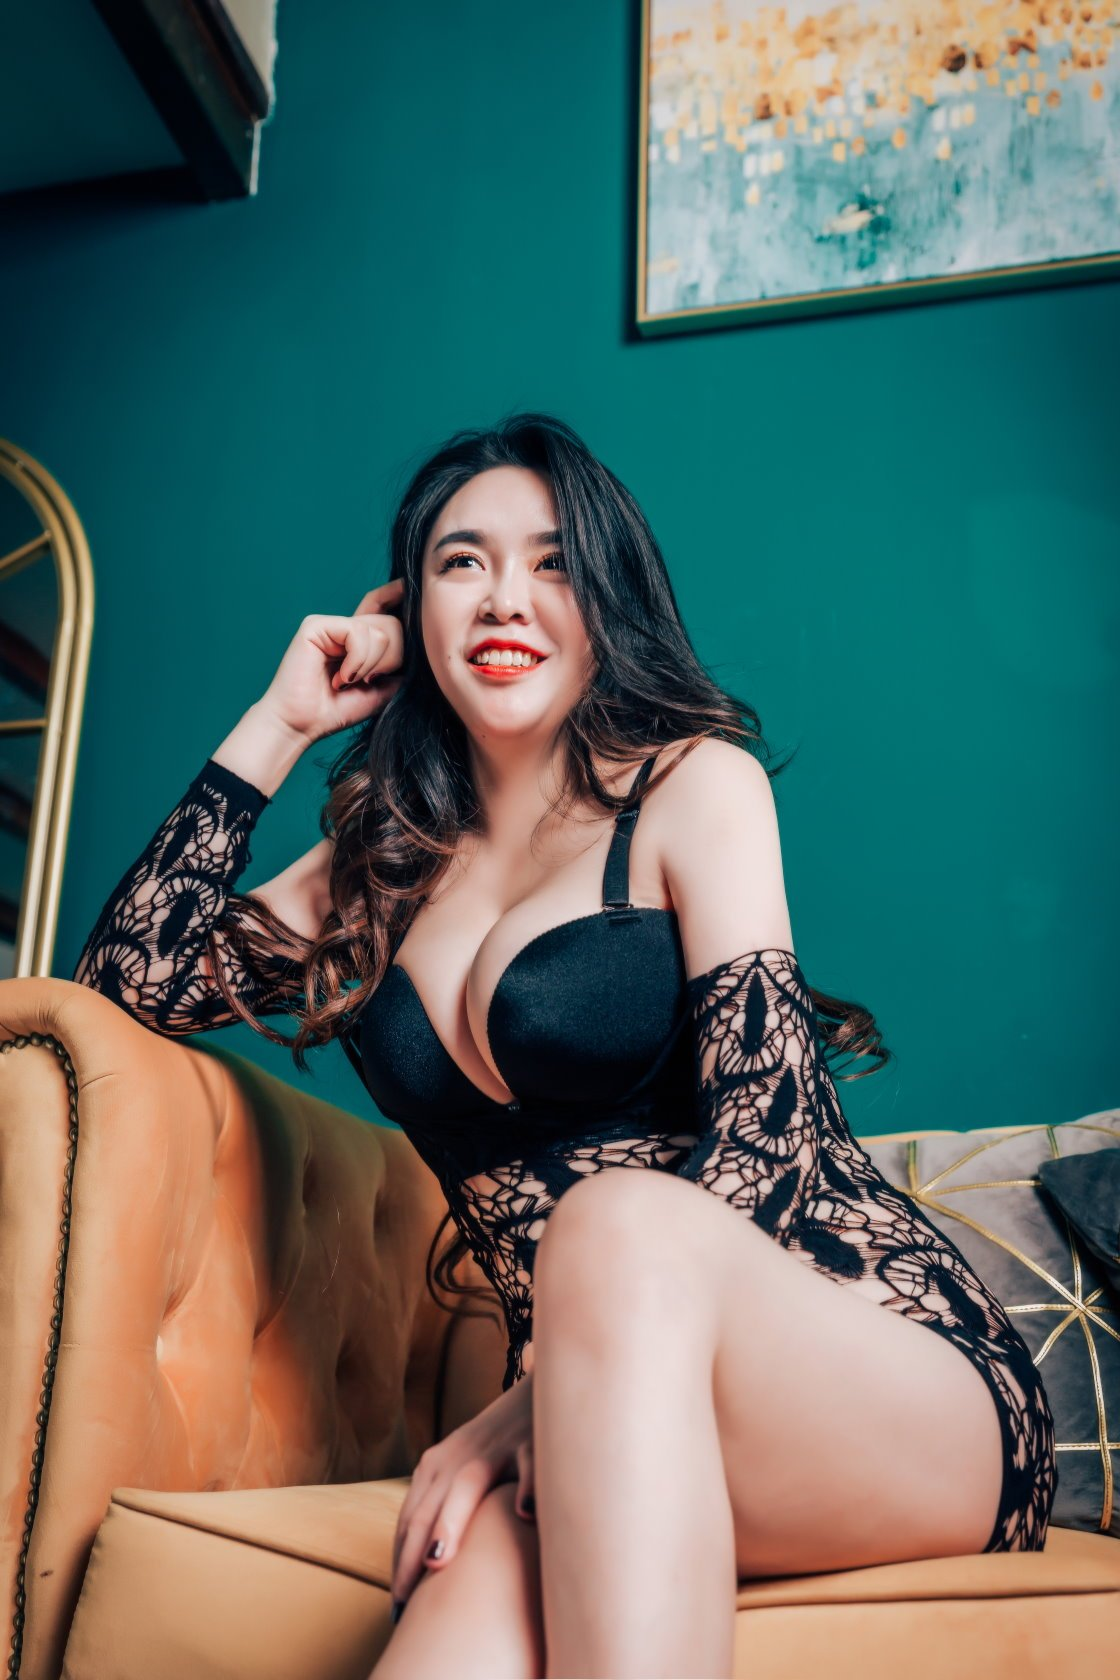 Shanghai cute massage boy, chinese male escort in shanghai